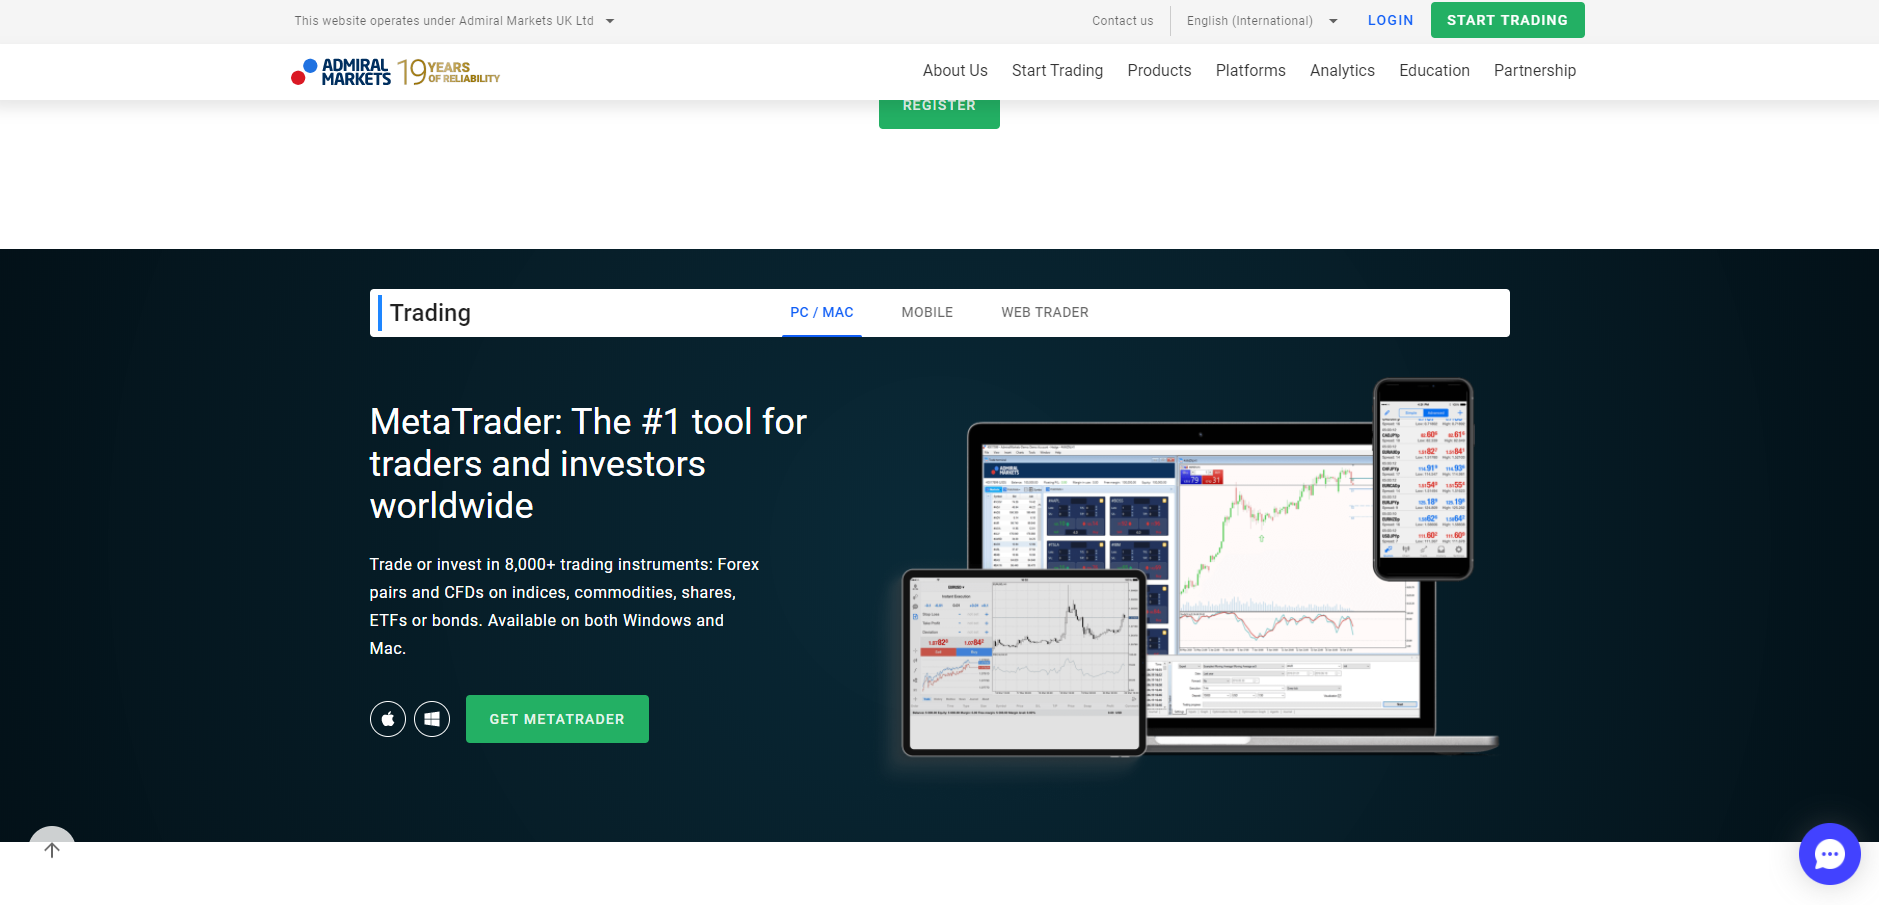 Official website of the forex broker Admiral Markets in the UK